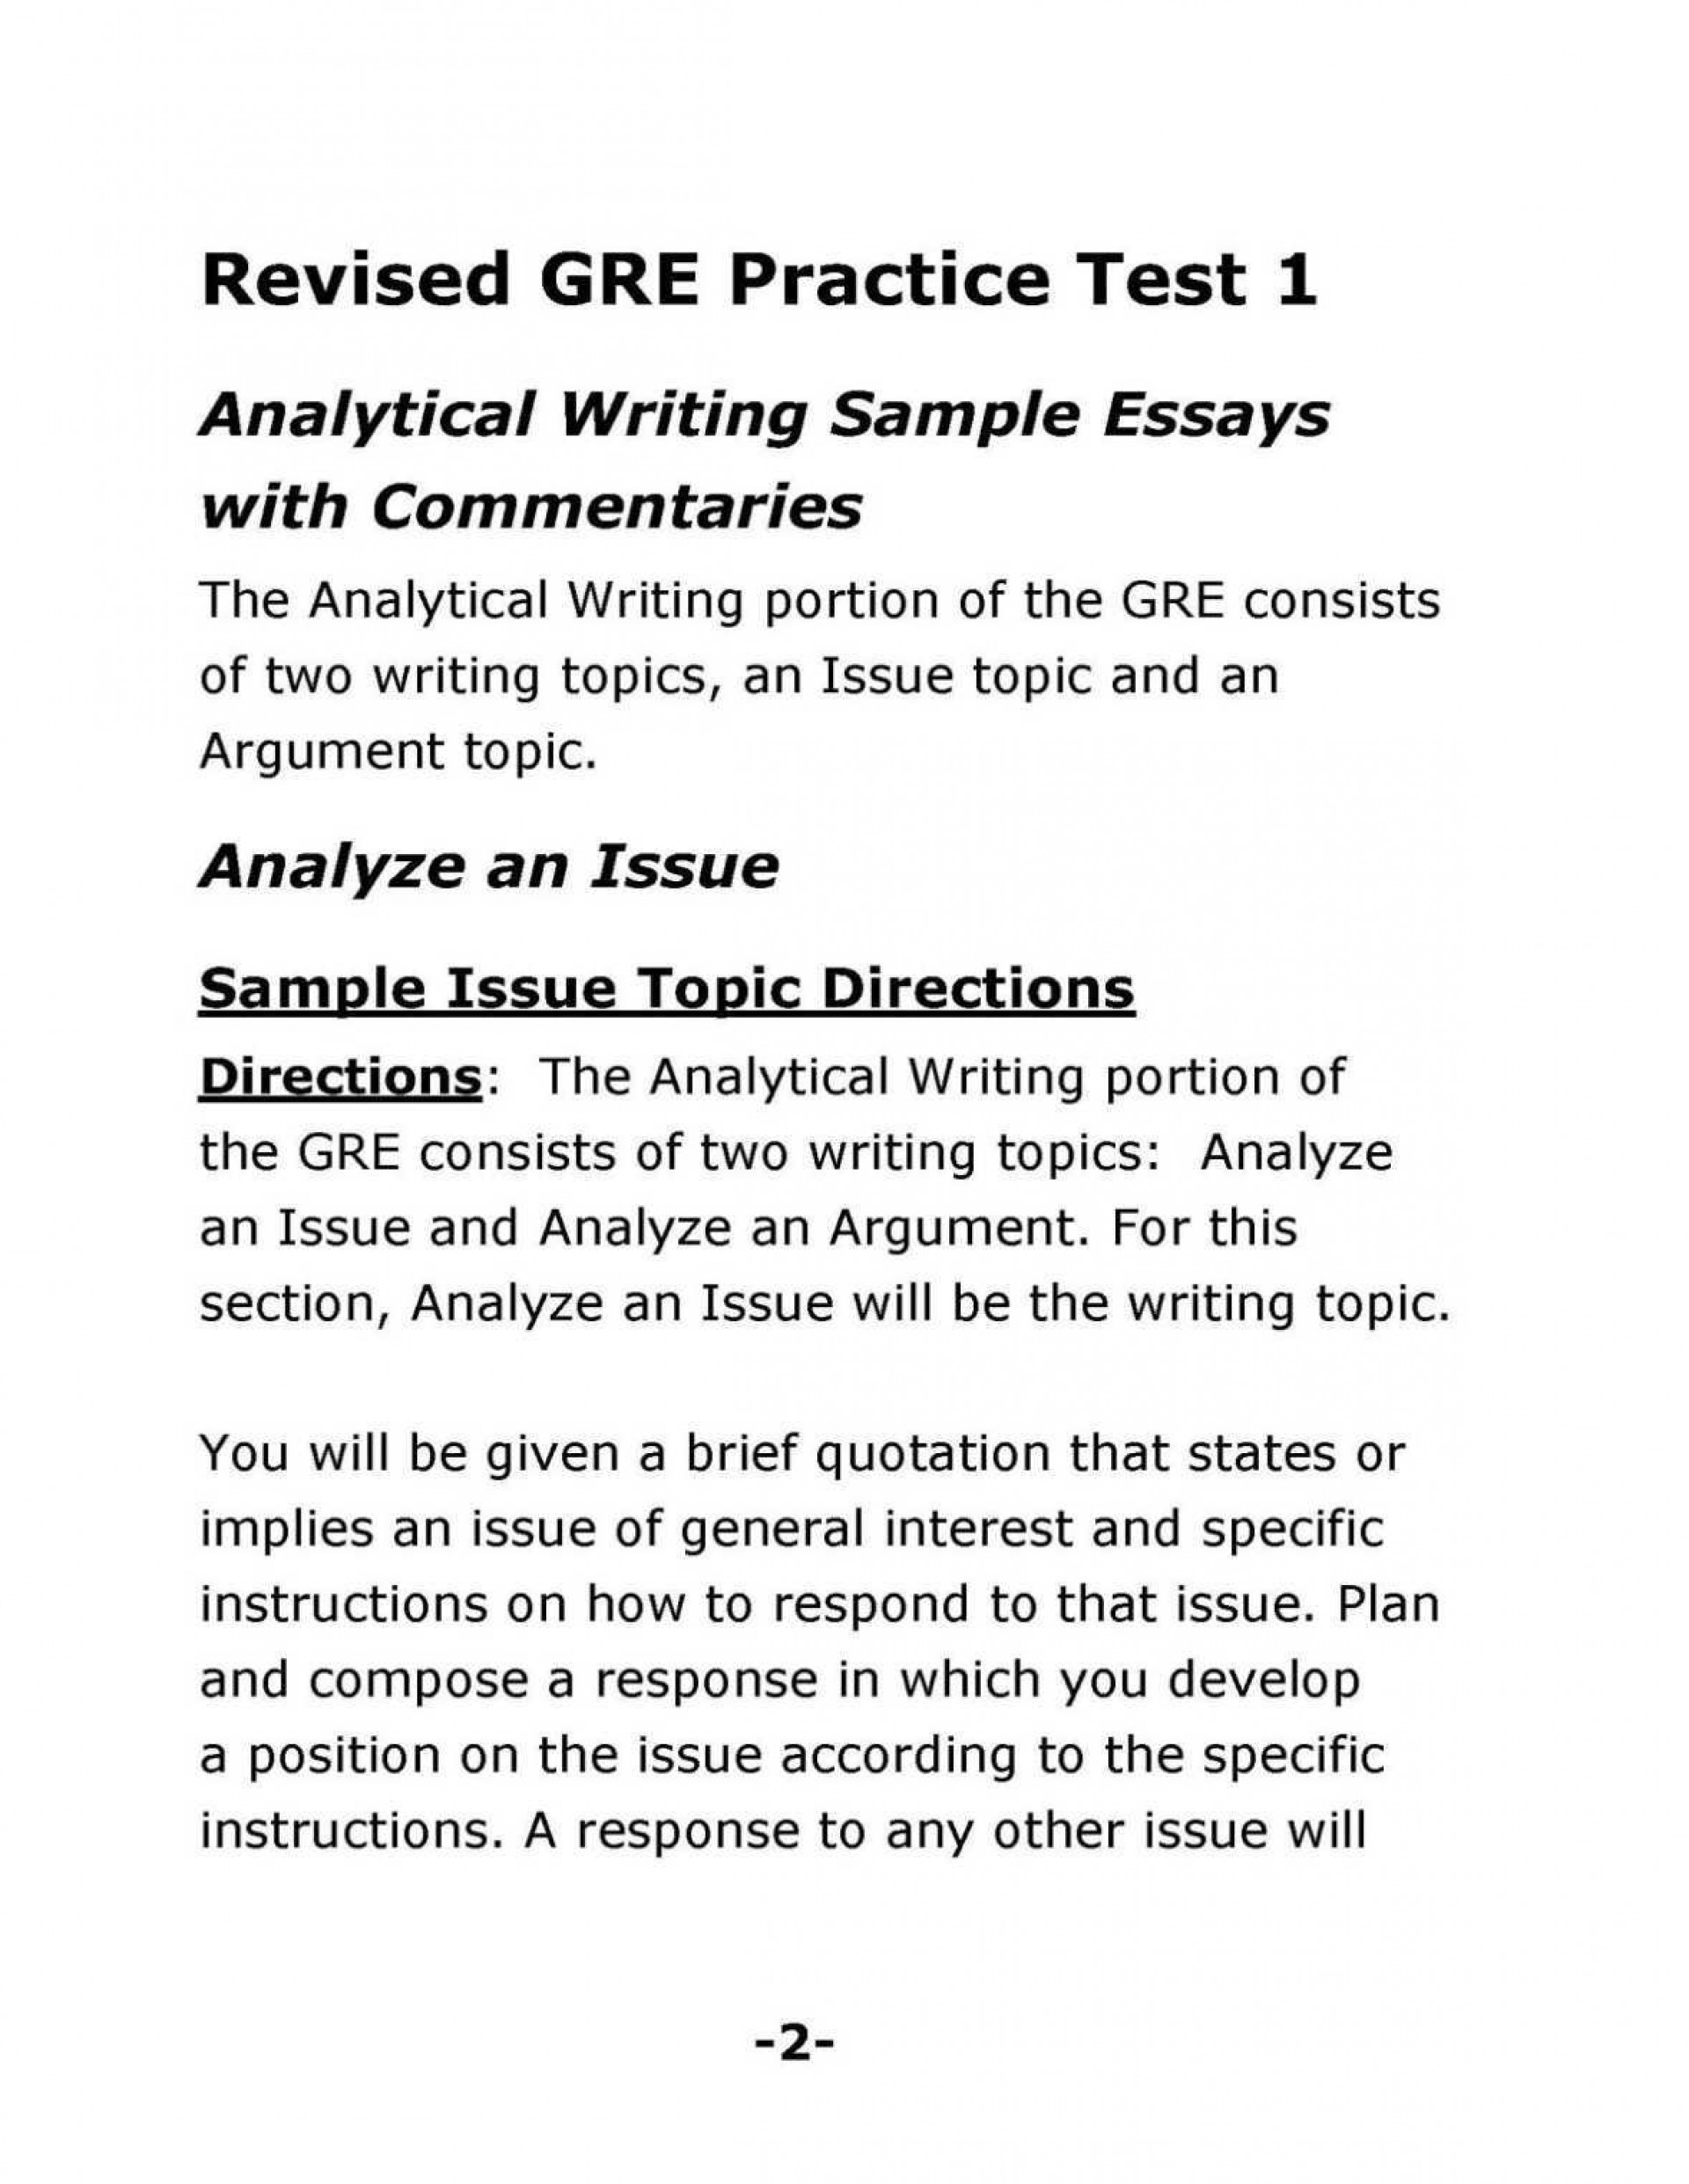 003 How To Write Gre Essay Example Online Helper Get Your Task Done By Pro Analysis Of An Sample Test Papers With Soluti Essays For Analytical Stunning A Issue Great Writing 1920